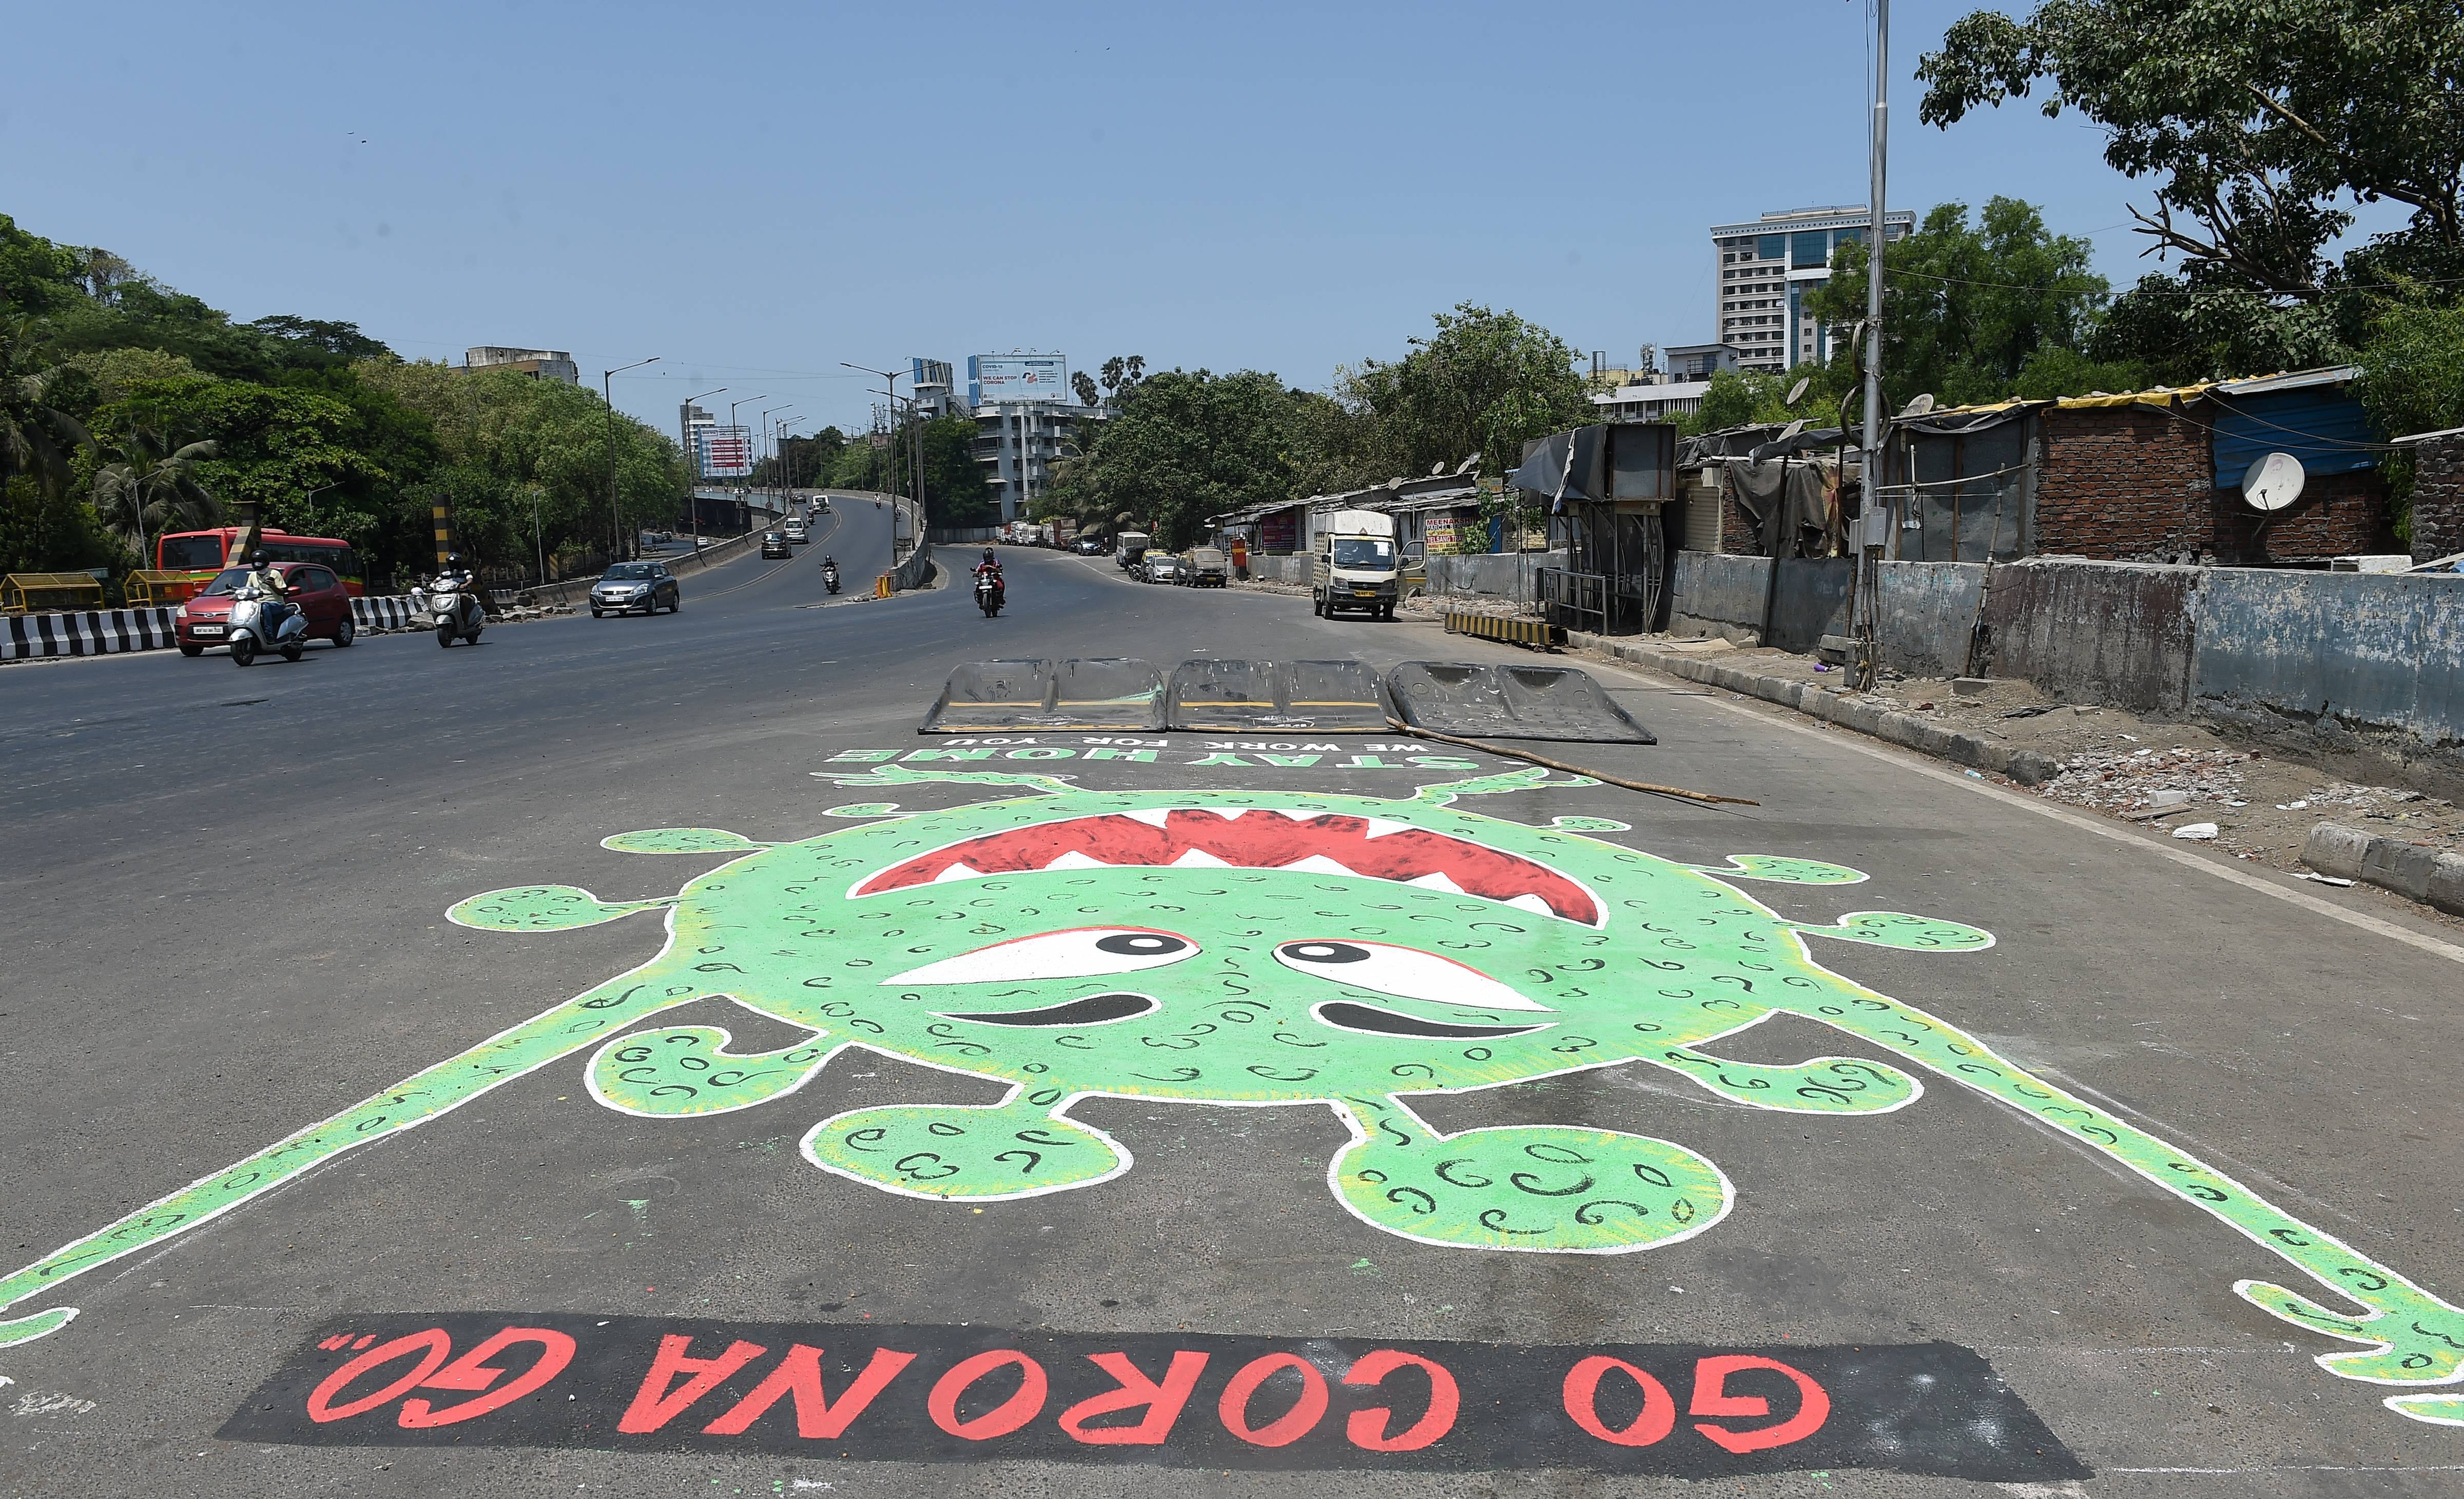 A street art resembling coronavirus is seen near Sasson Docks, during the ongoing nationwide lockdown as preventive measure against Covid-19, in Mumbai, Tuesday, May 12, 2020.